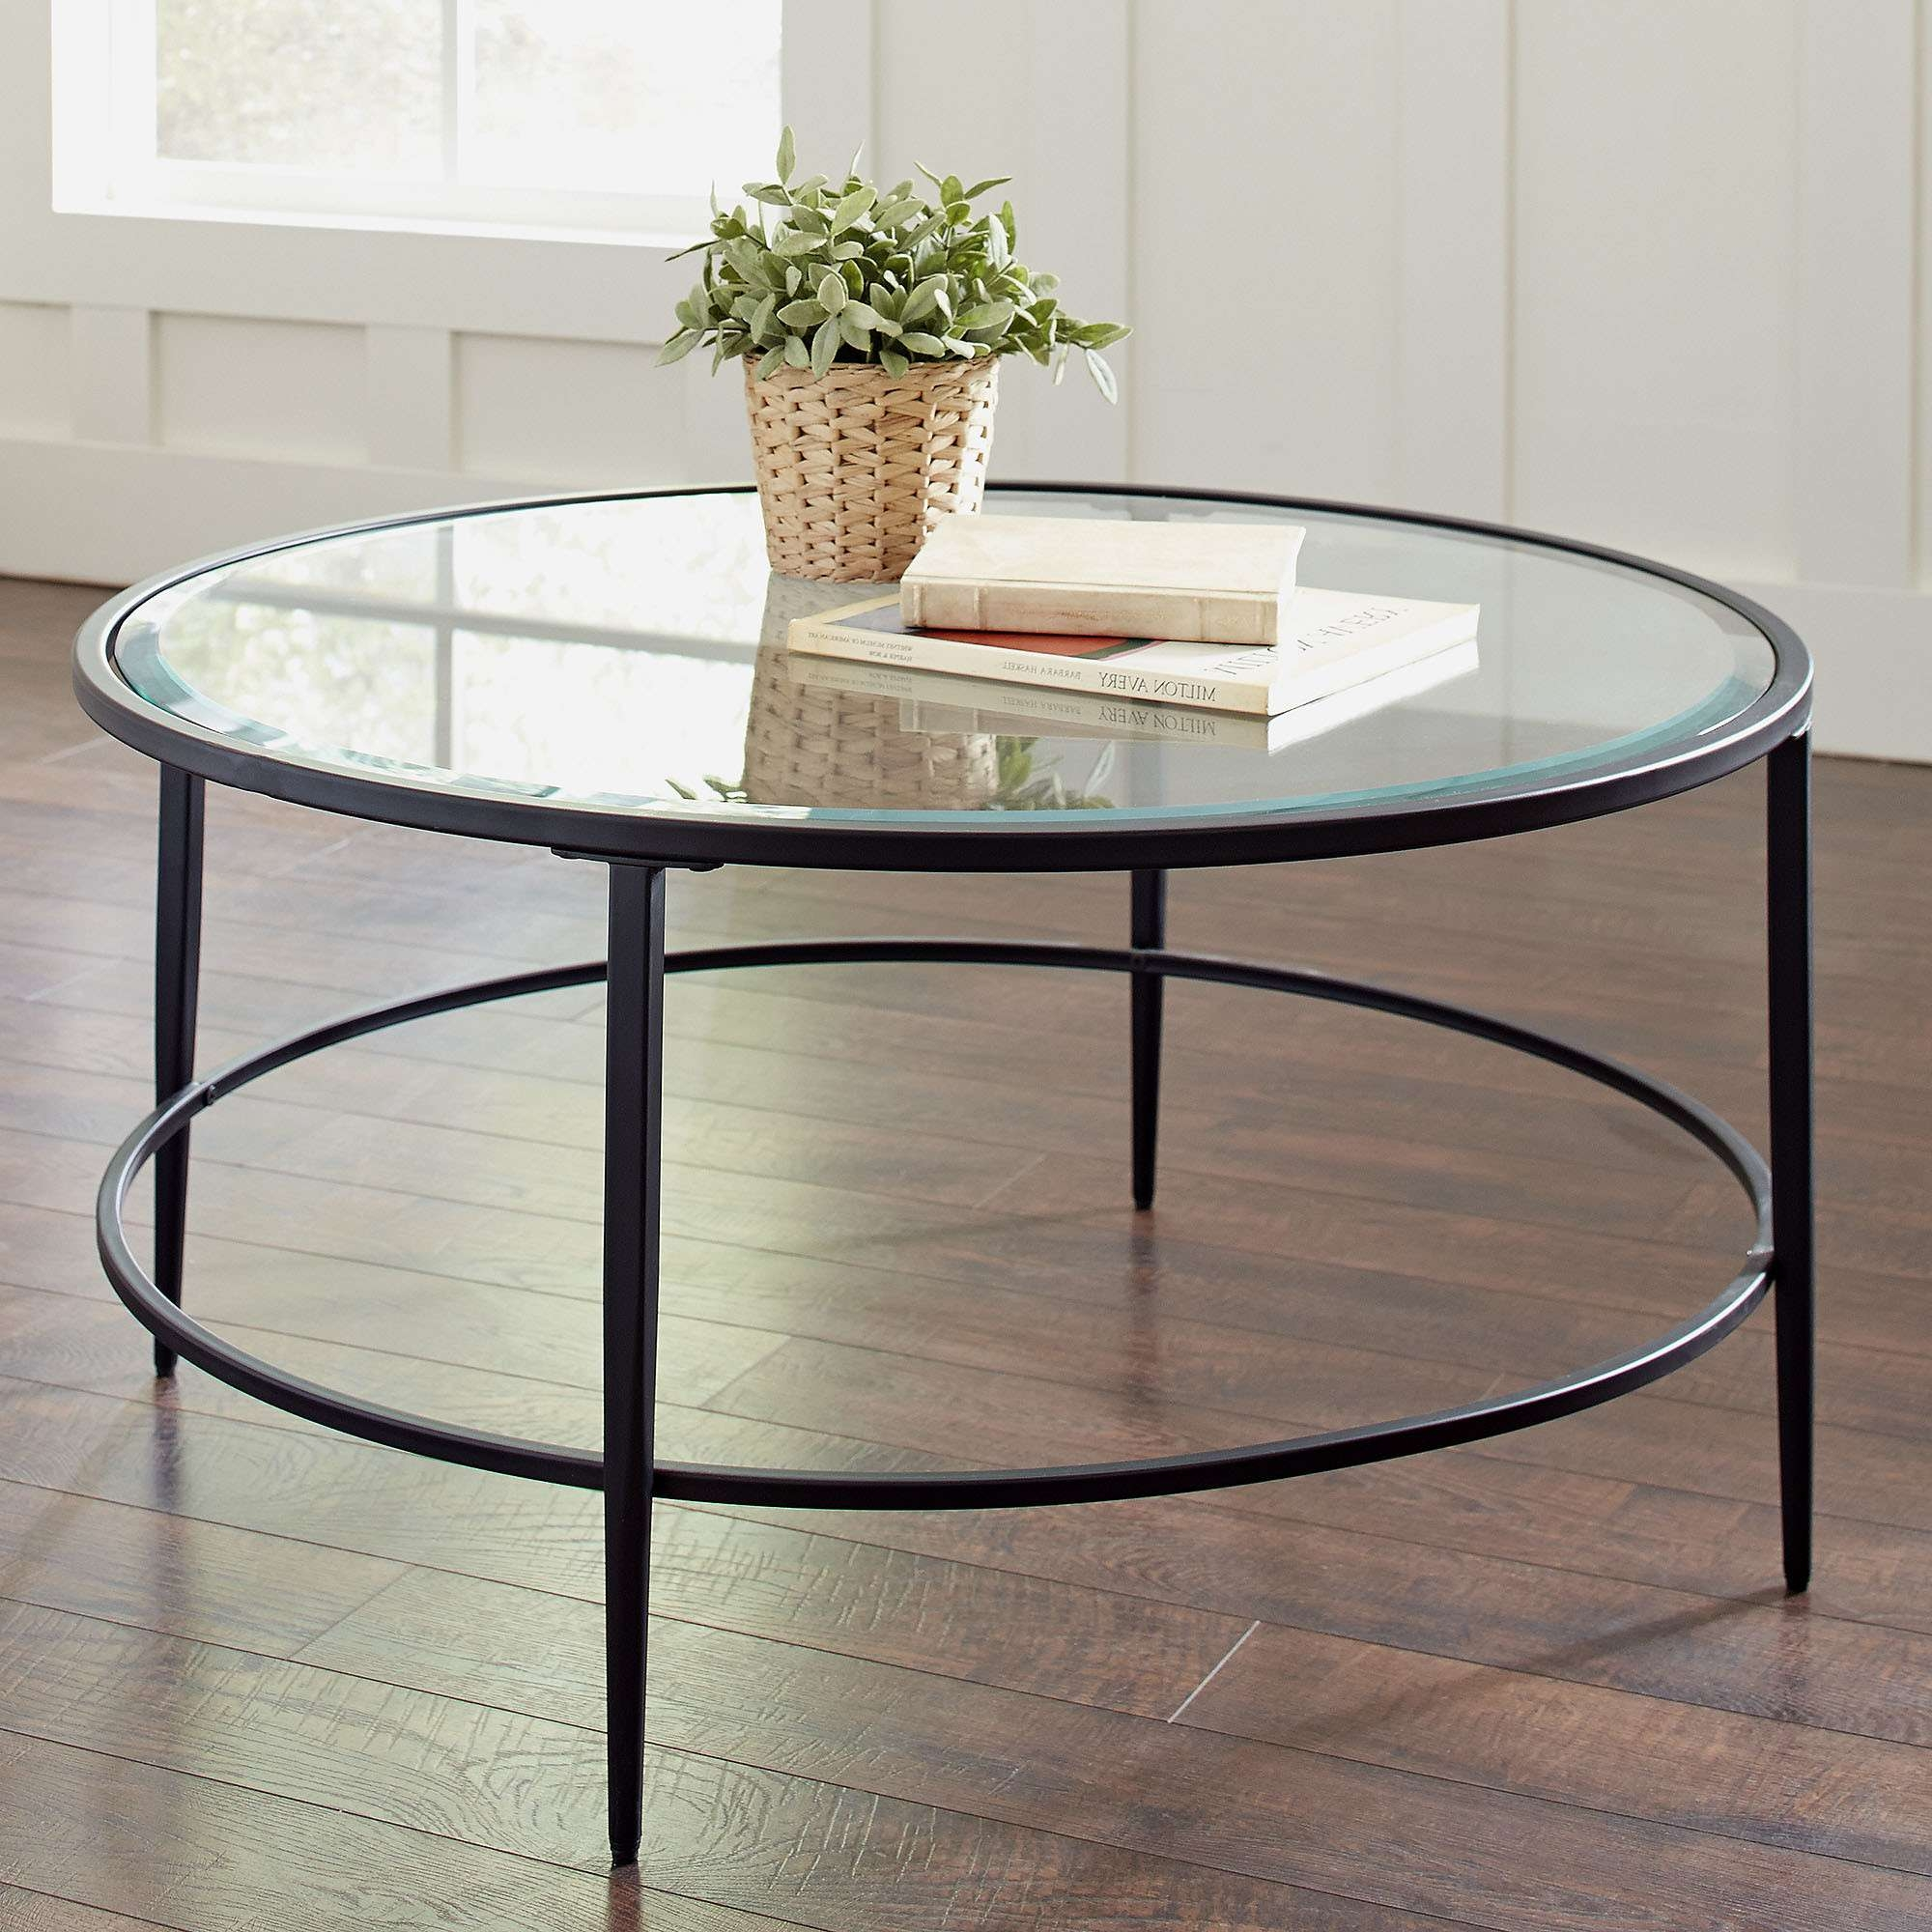 2017 Oversized Round Coffee Tables Within Coffee Table : Magnificent Black Modern Coffee Table Modern Glass (View 14 of 20)